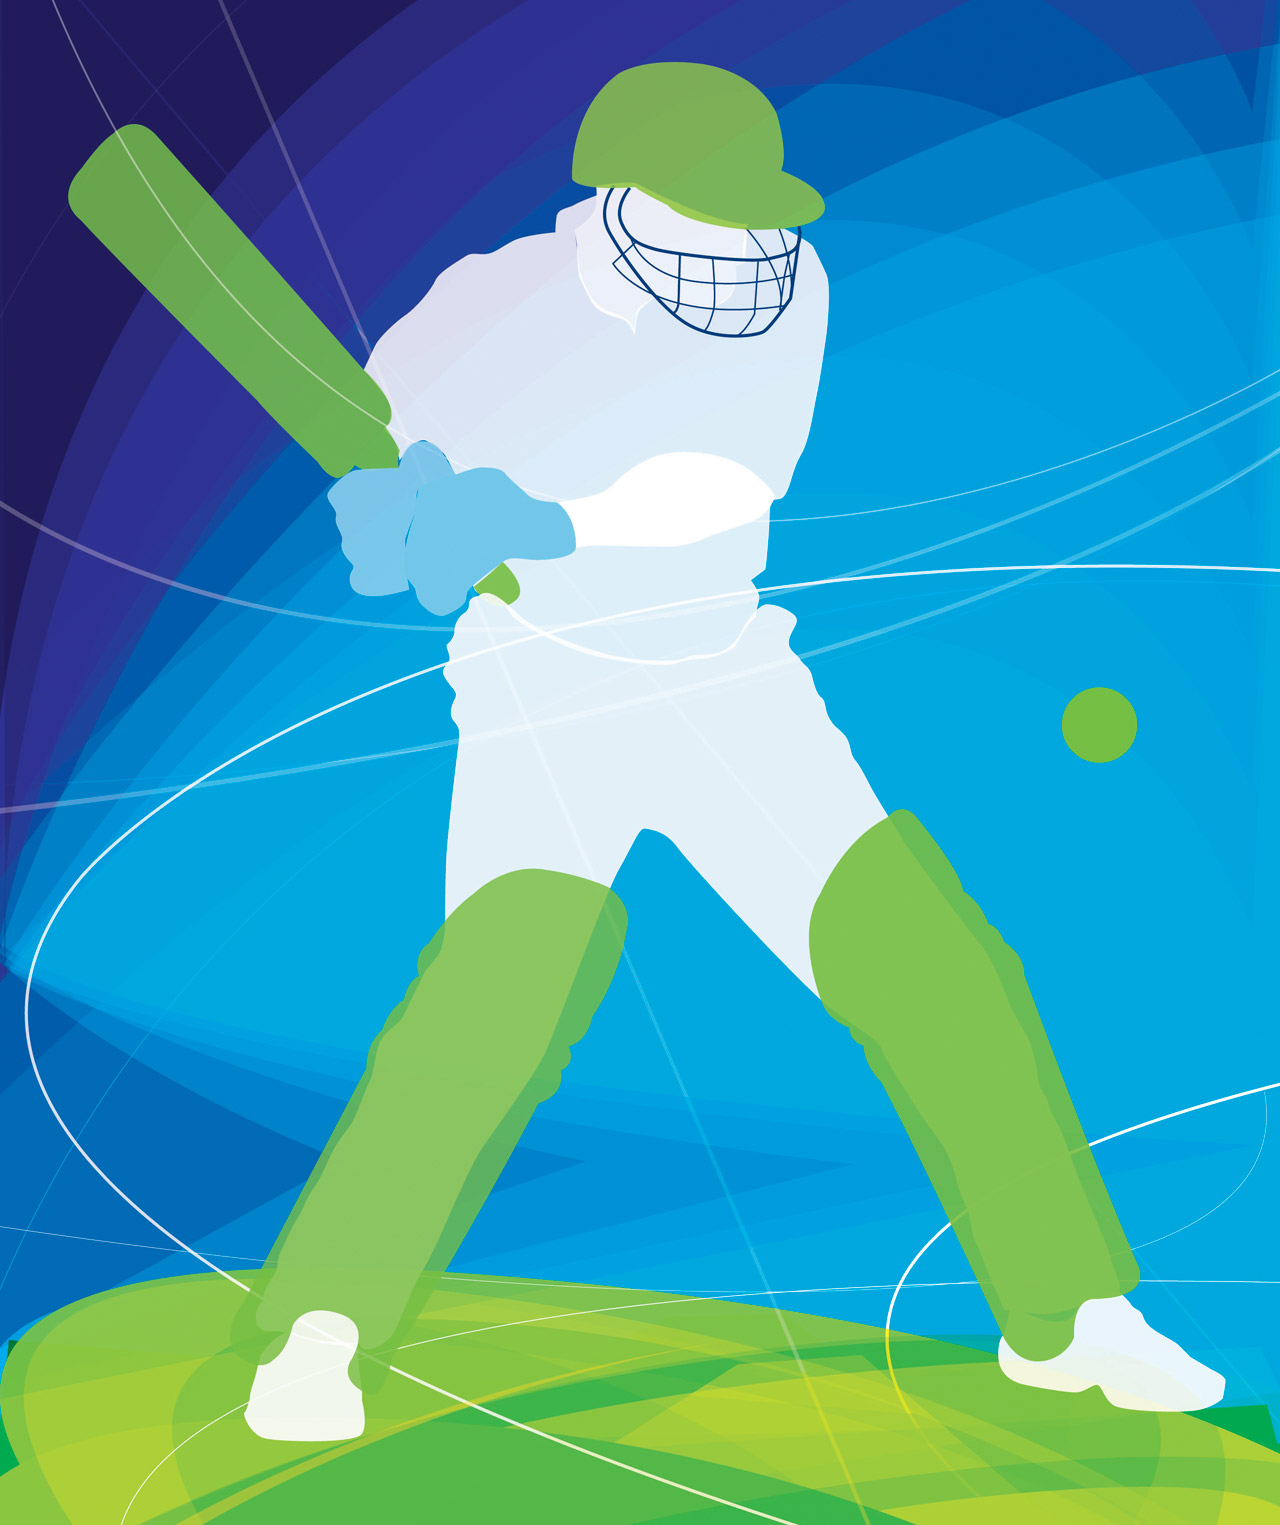 Ulster Sports Centre Cricket Illustration